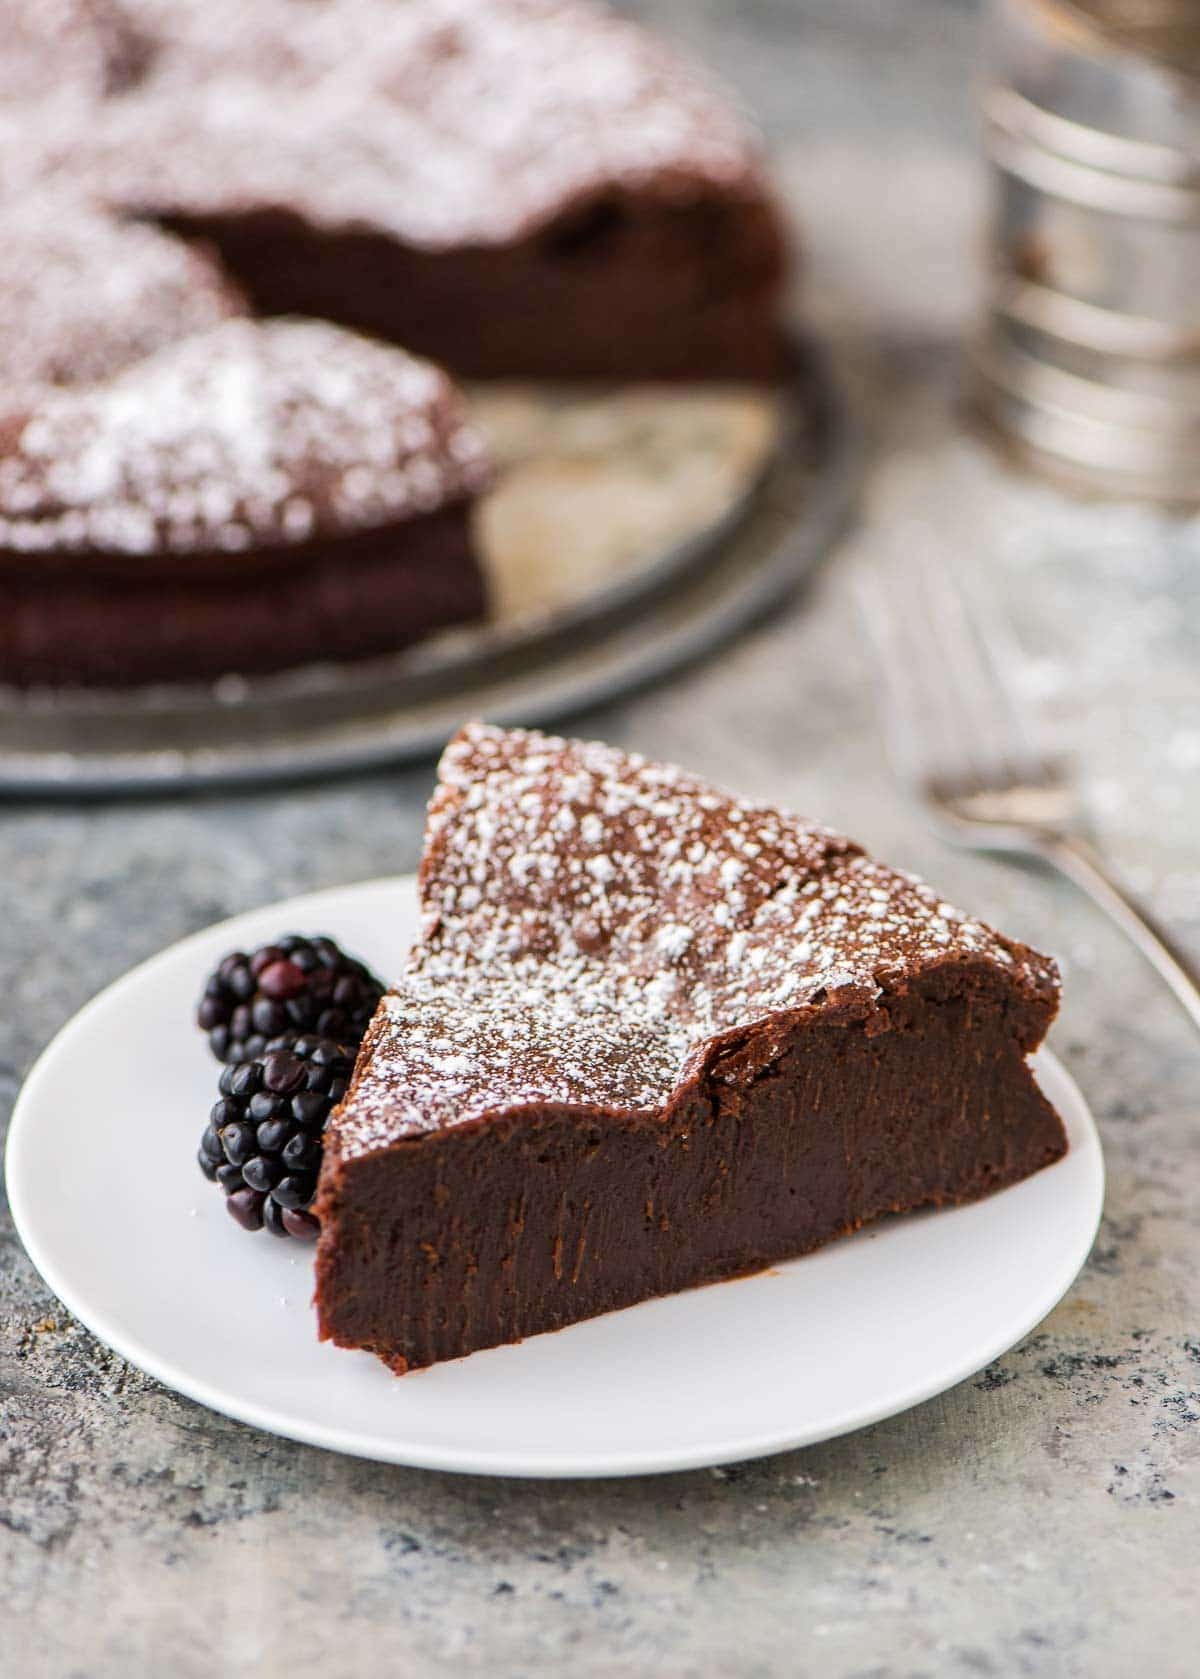 Easy Mini Flourless Chocolate Cake